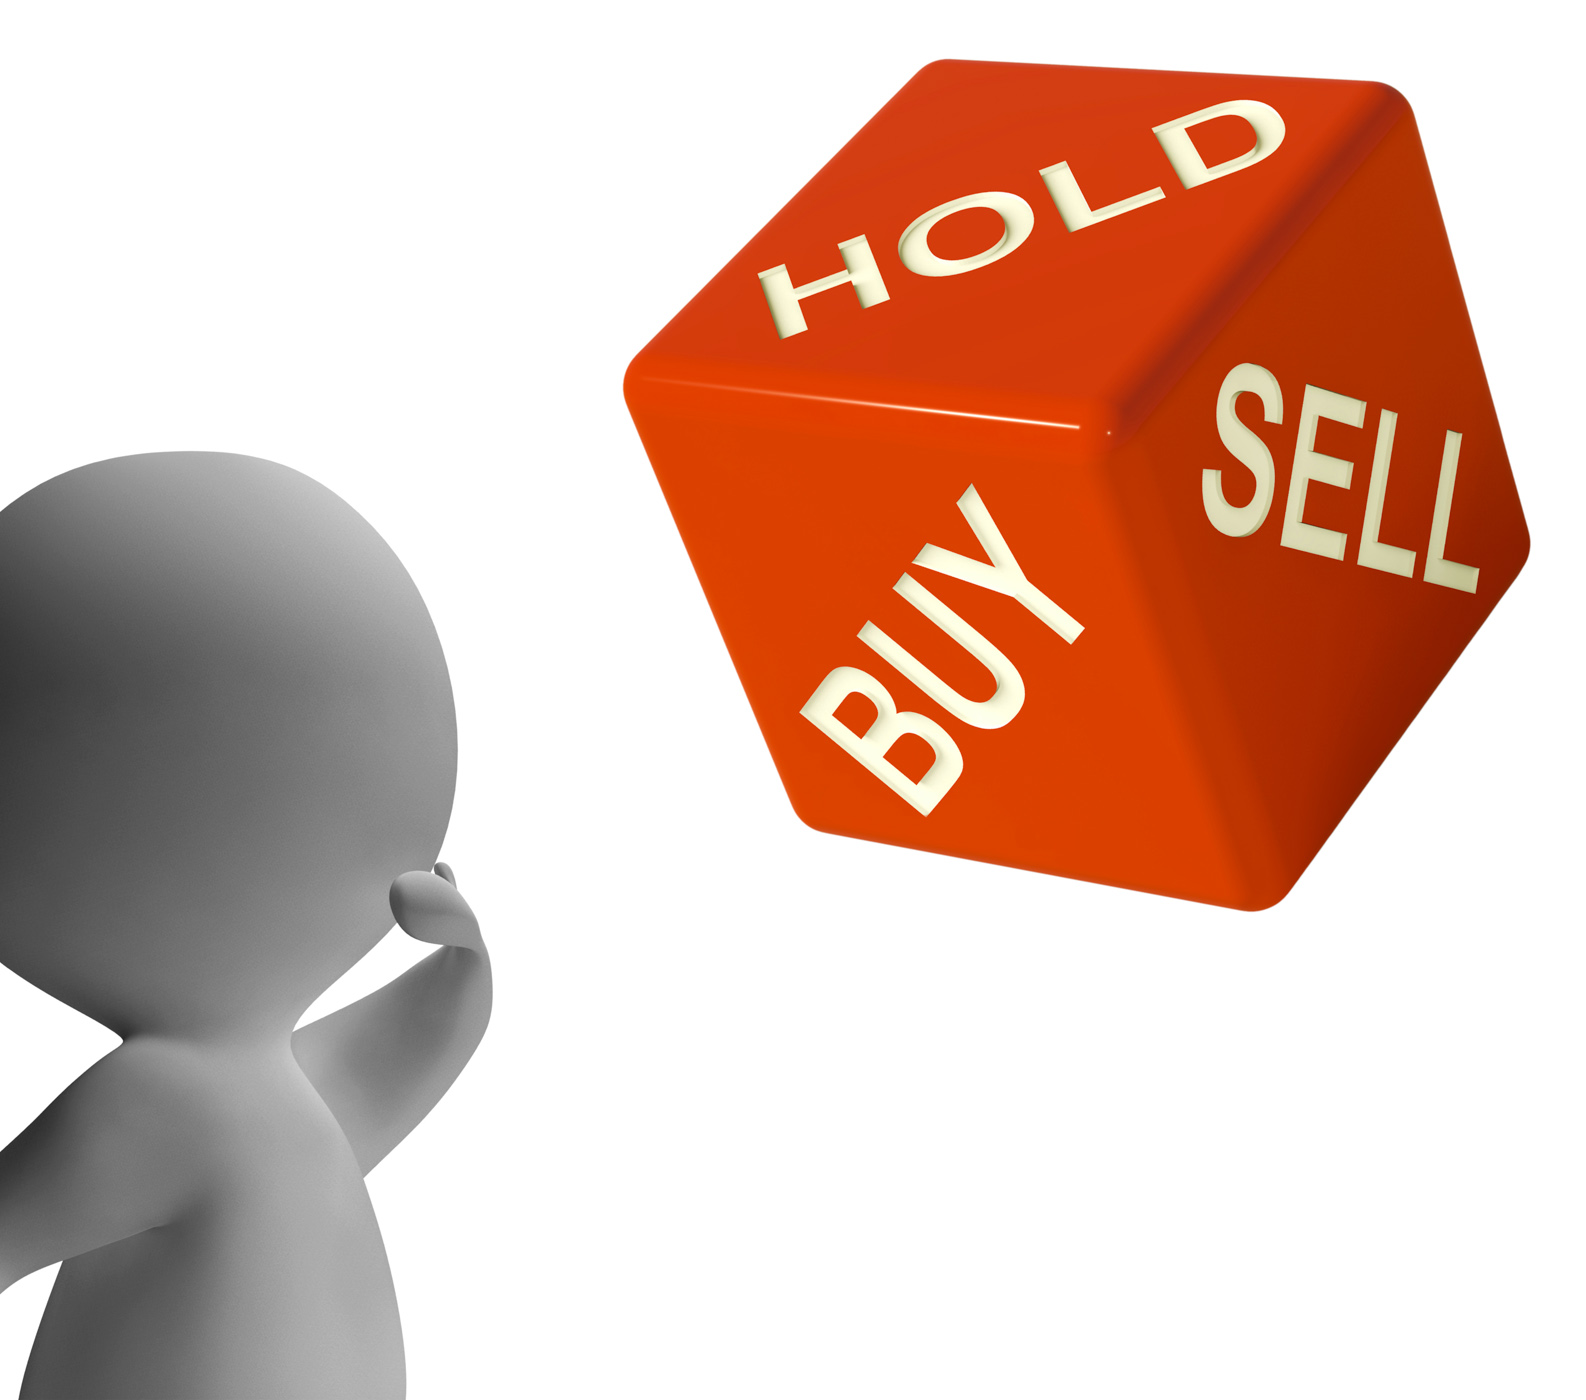 Buy hold and sell dice represents stocks strategy photo